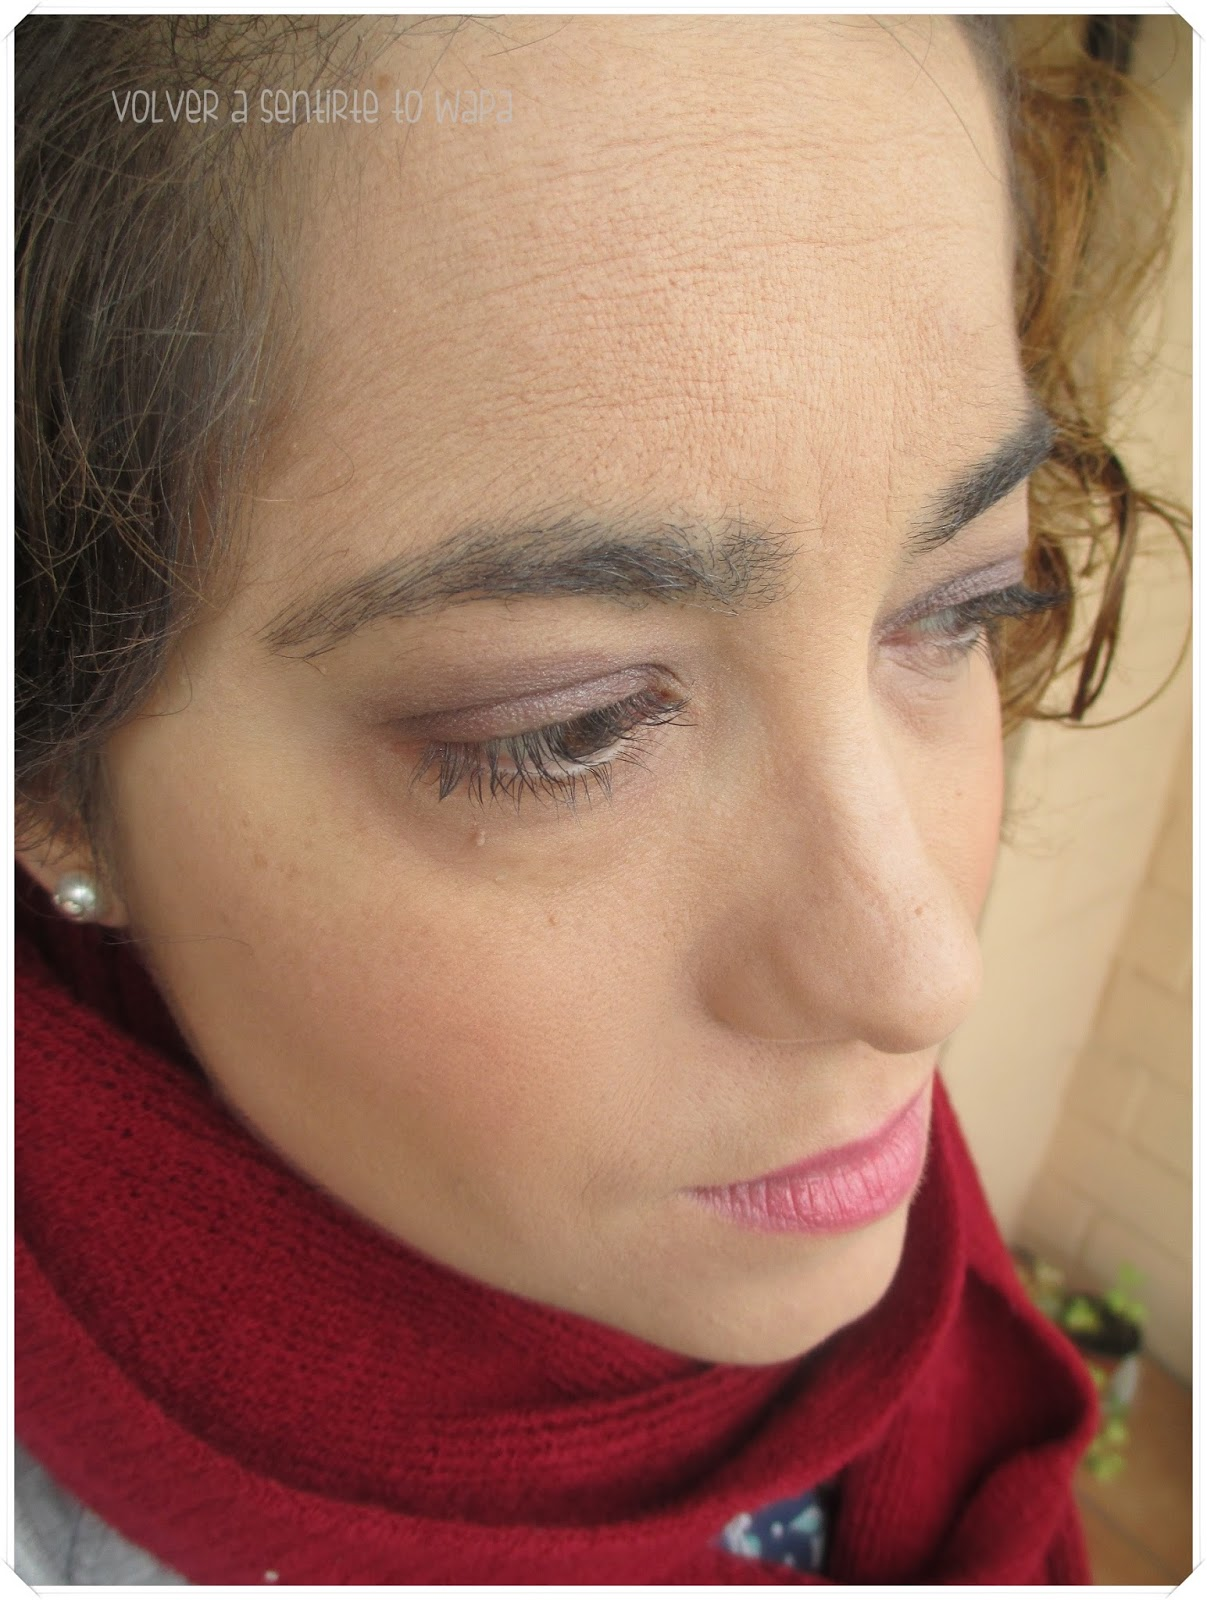 Sombra de Make Up Store - tono ENAMOR